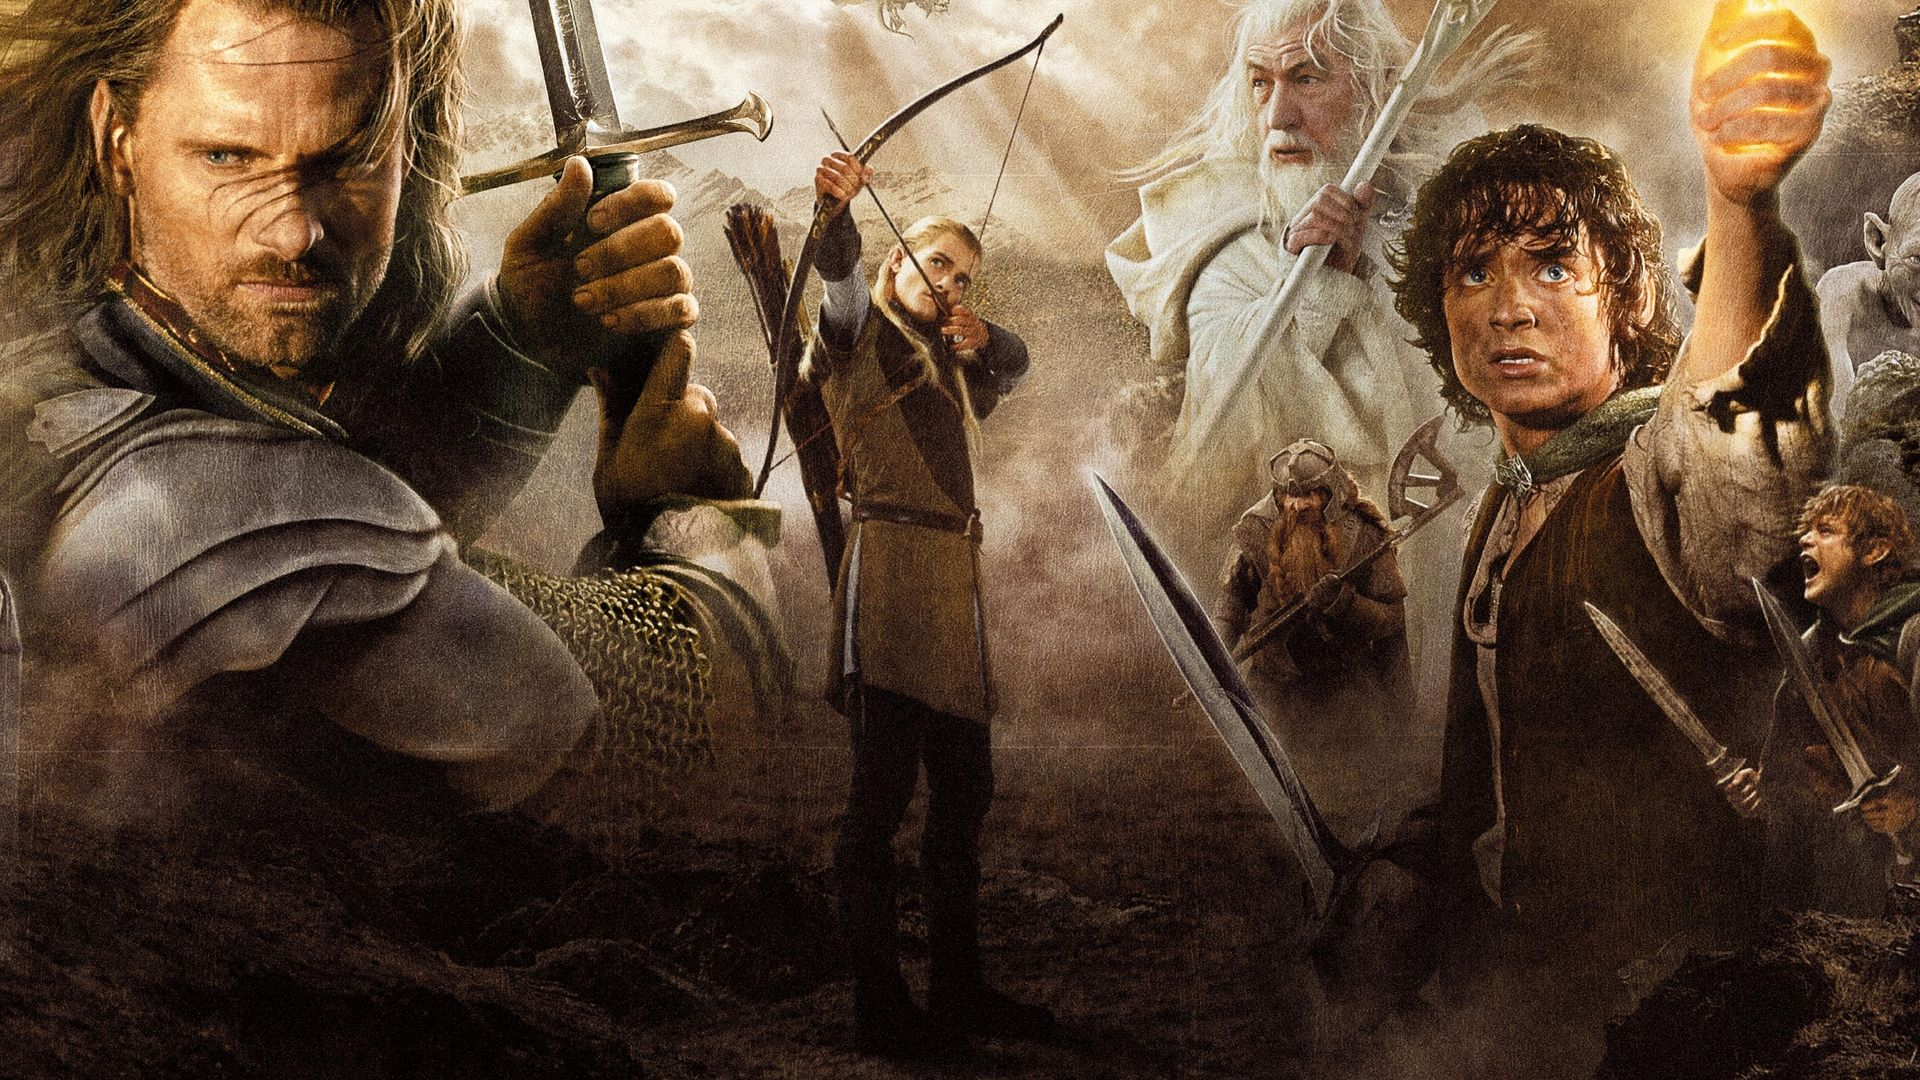 Lord Of The Rings Wallpaper Hd Og1 The Lord Of The Rings